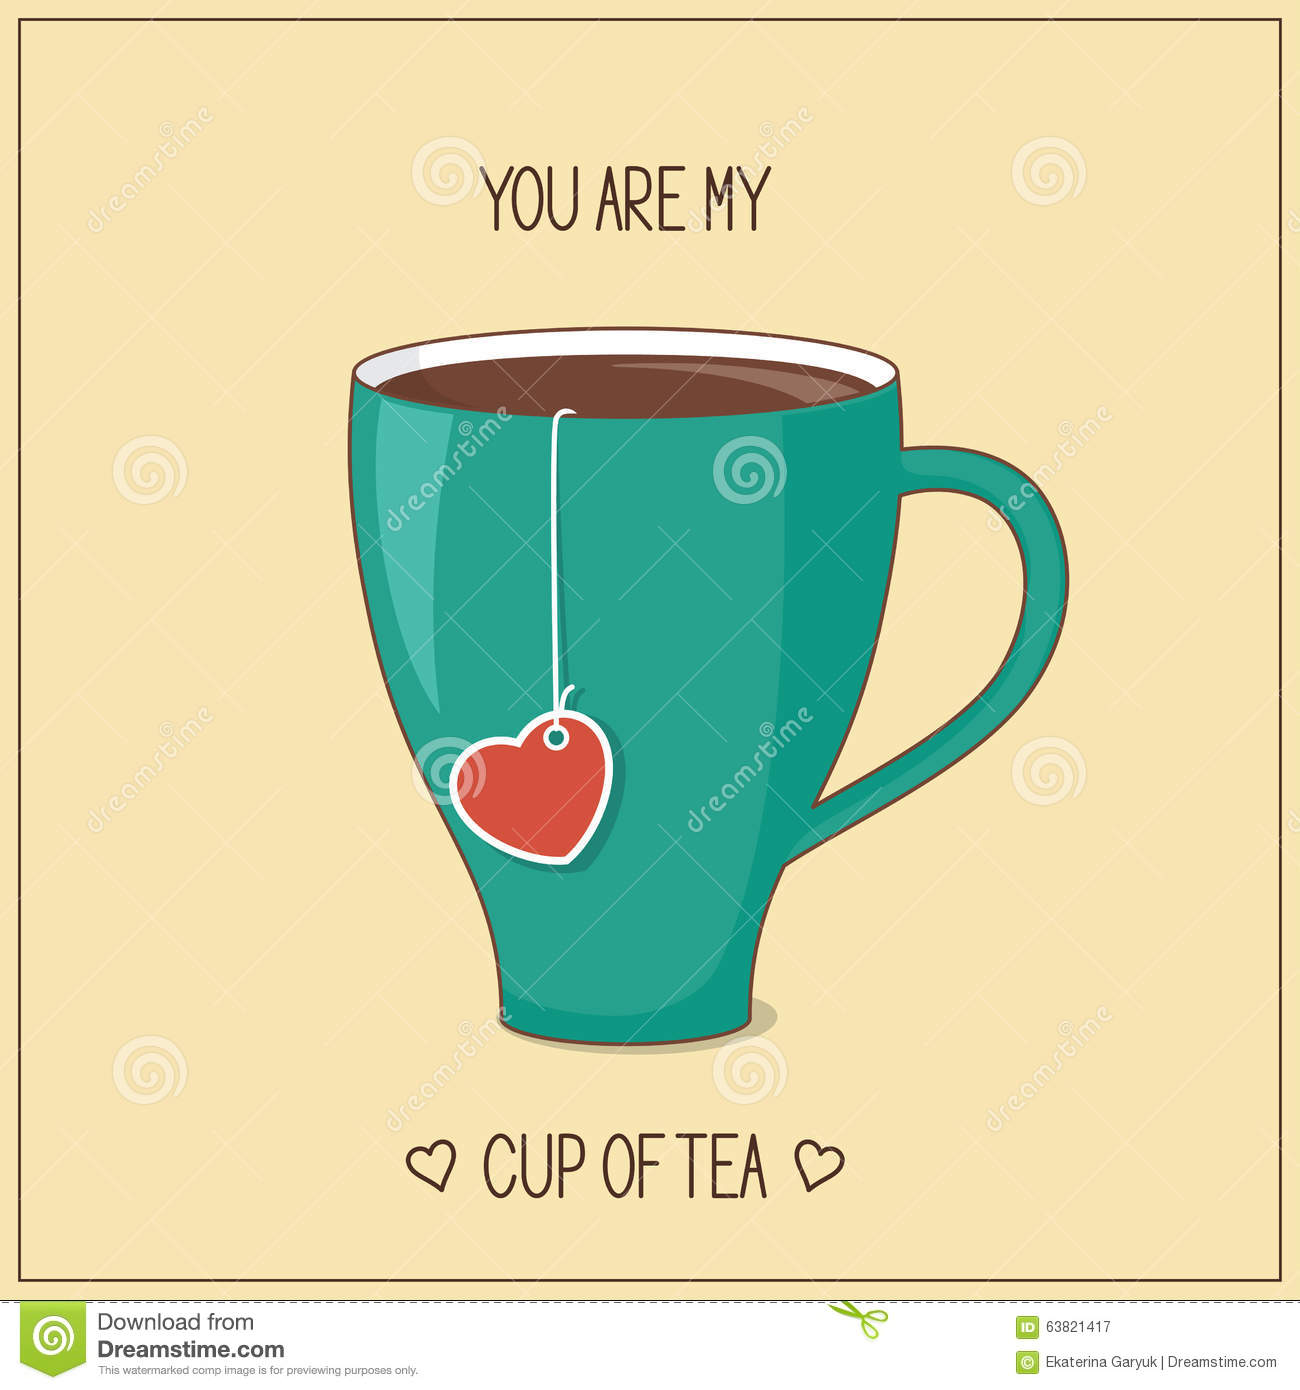 you are my cup of tea stock vector image 63821417. Black Bedroom Furniture Sets. Home Design Ideas